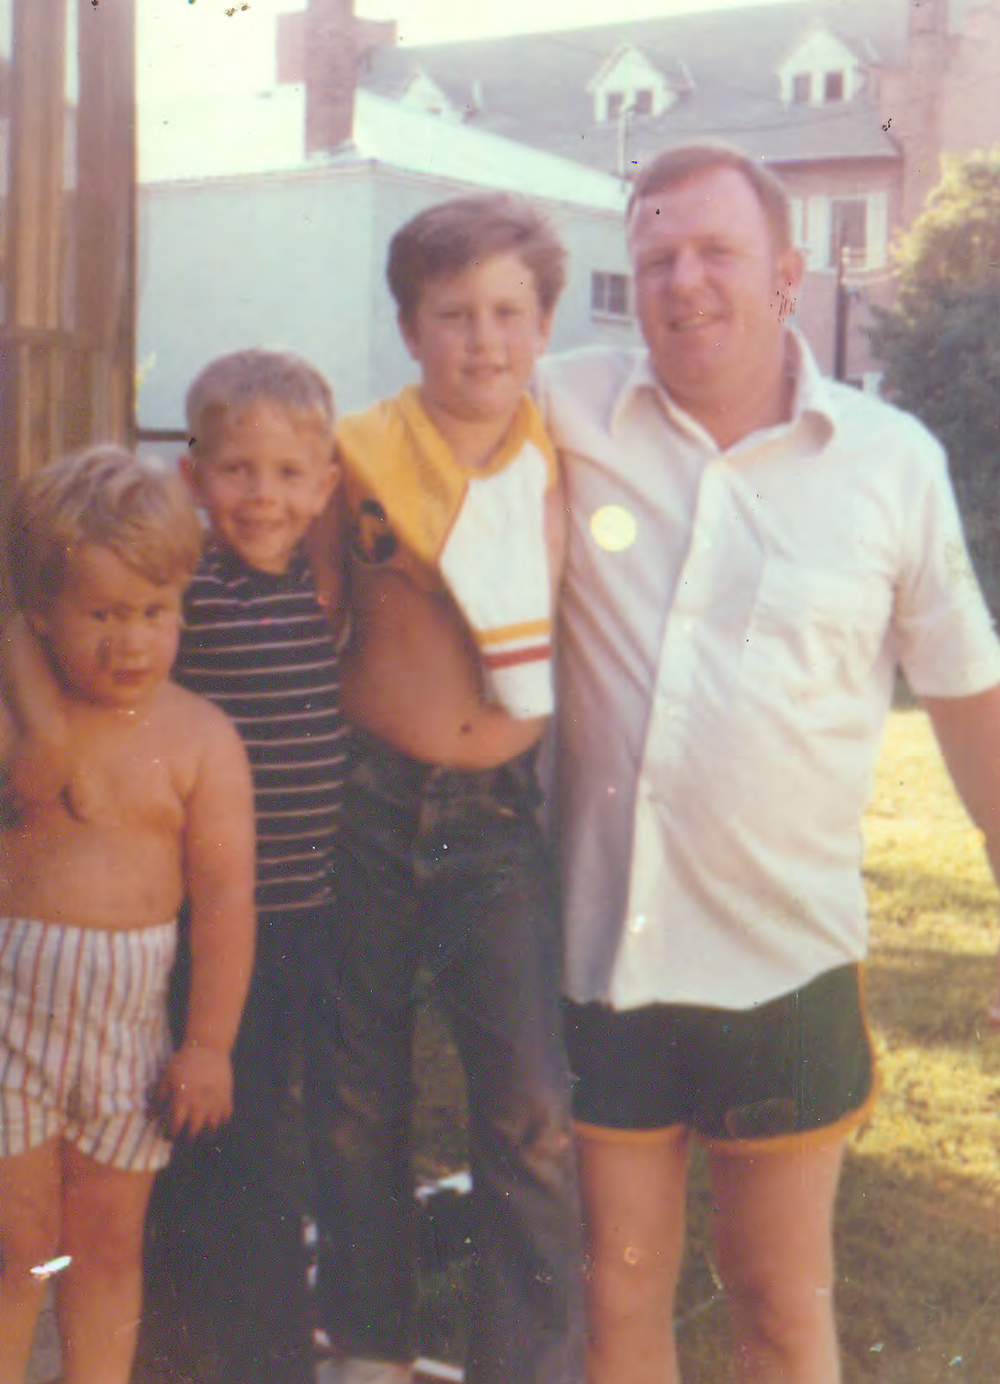 Family photograph of Cam MacDougall '01 with his two brothers and father.